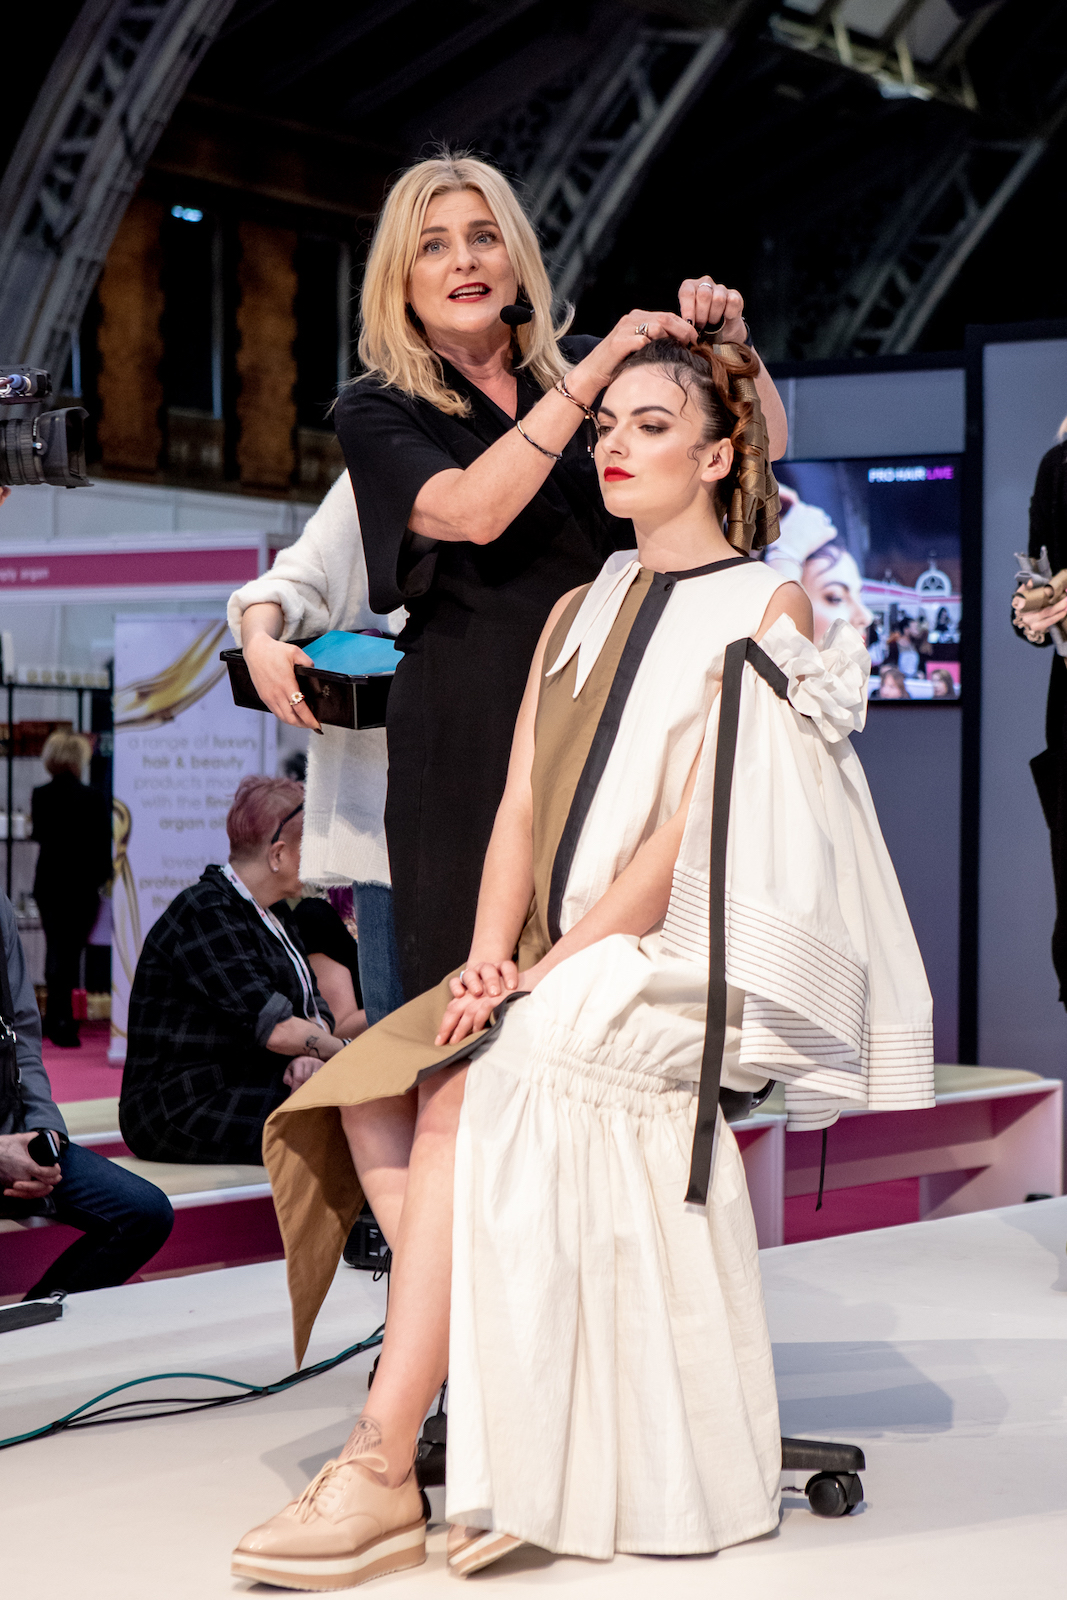 HairFlair at Pro Hair Live-034